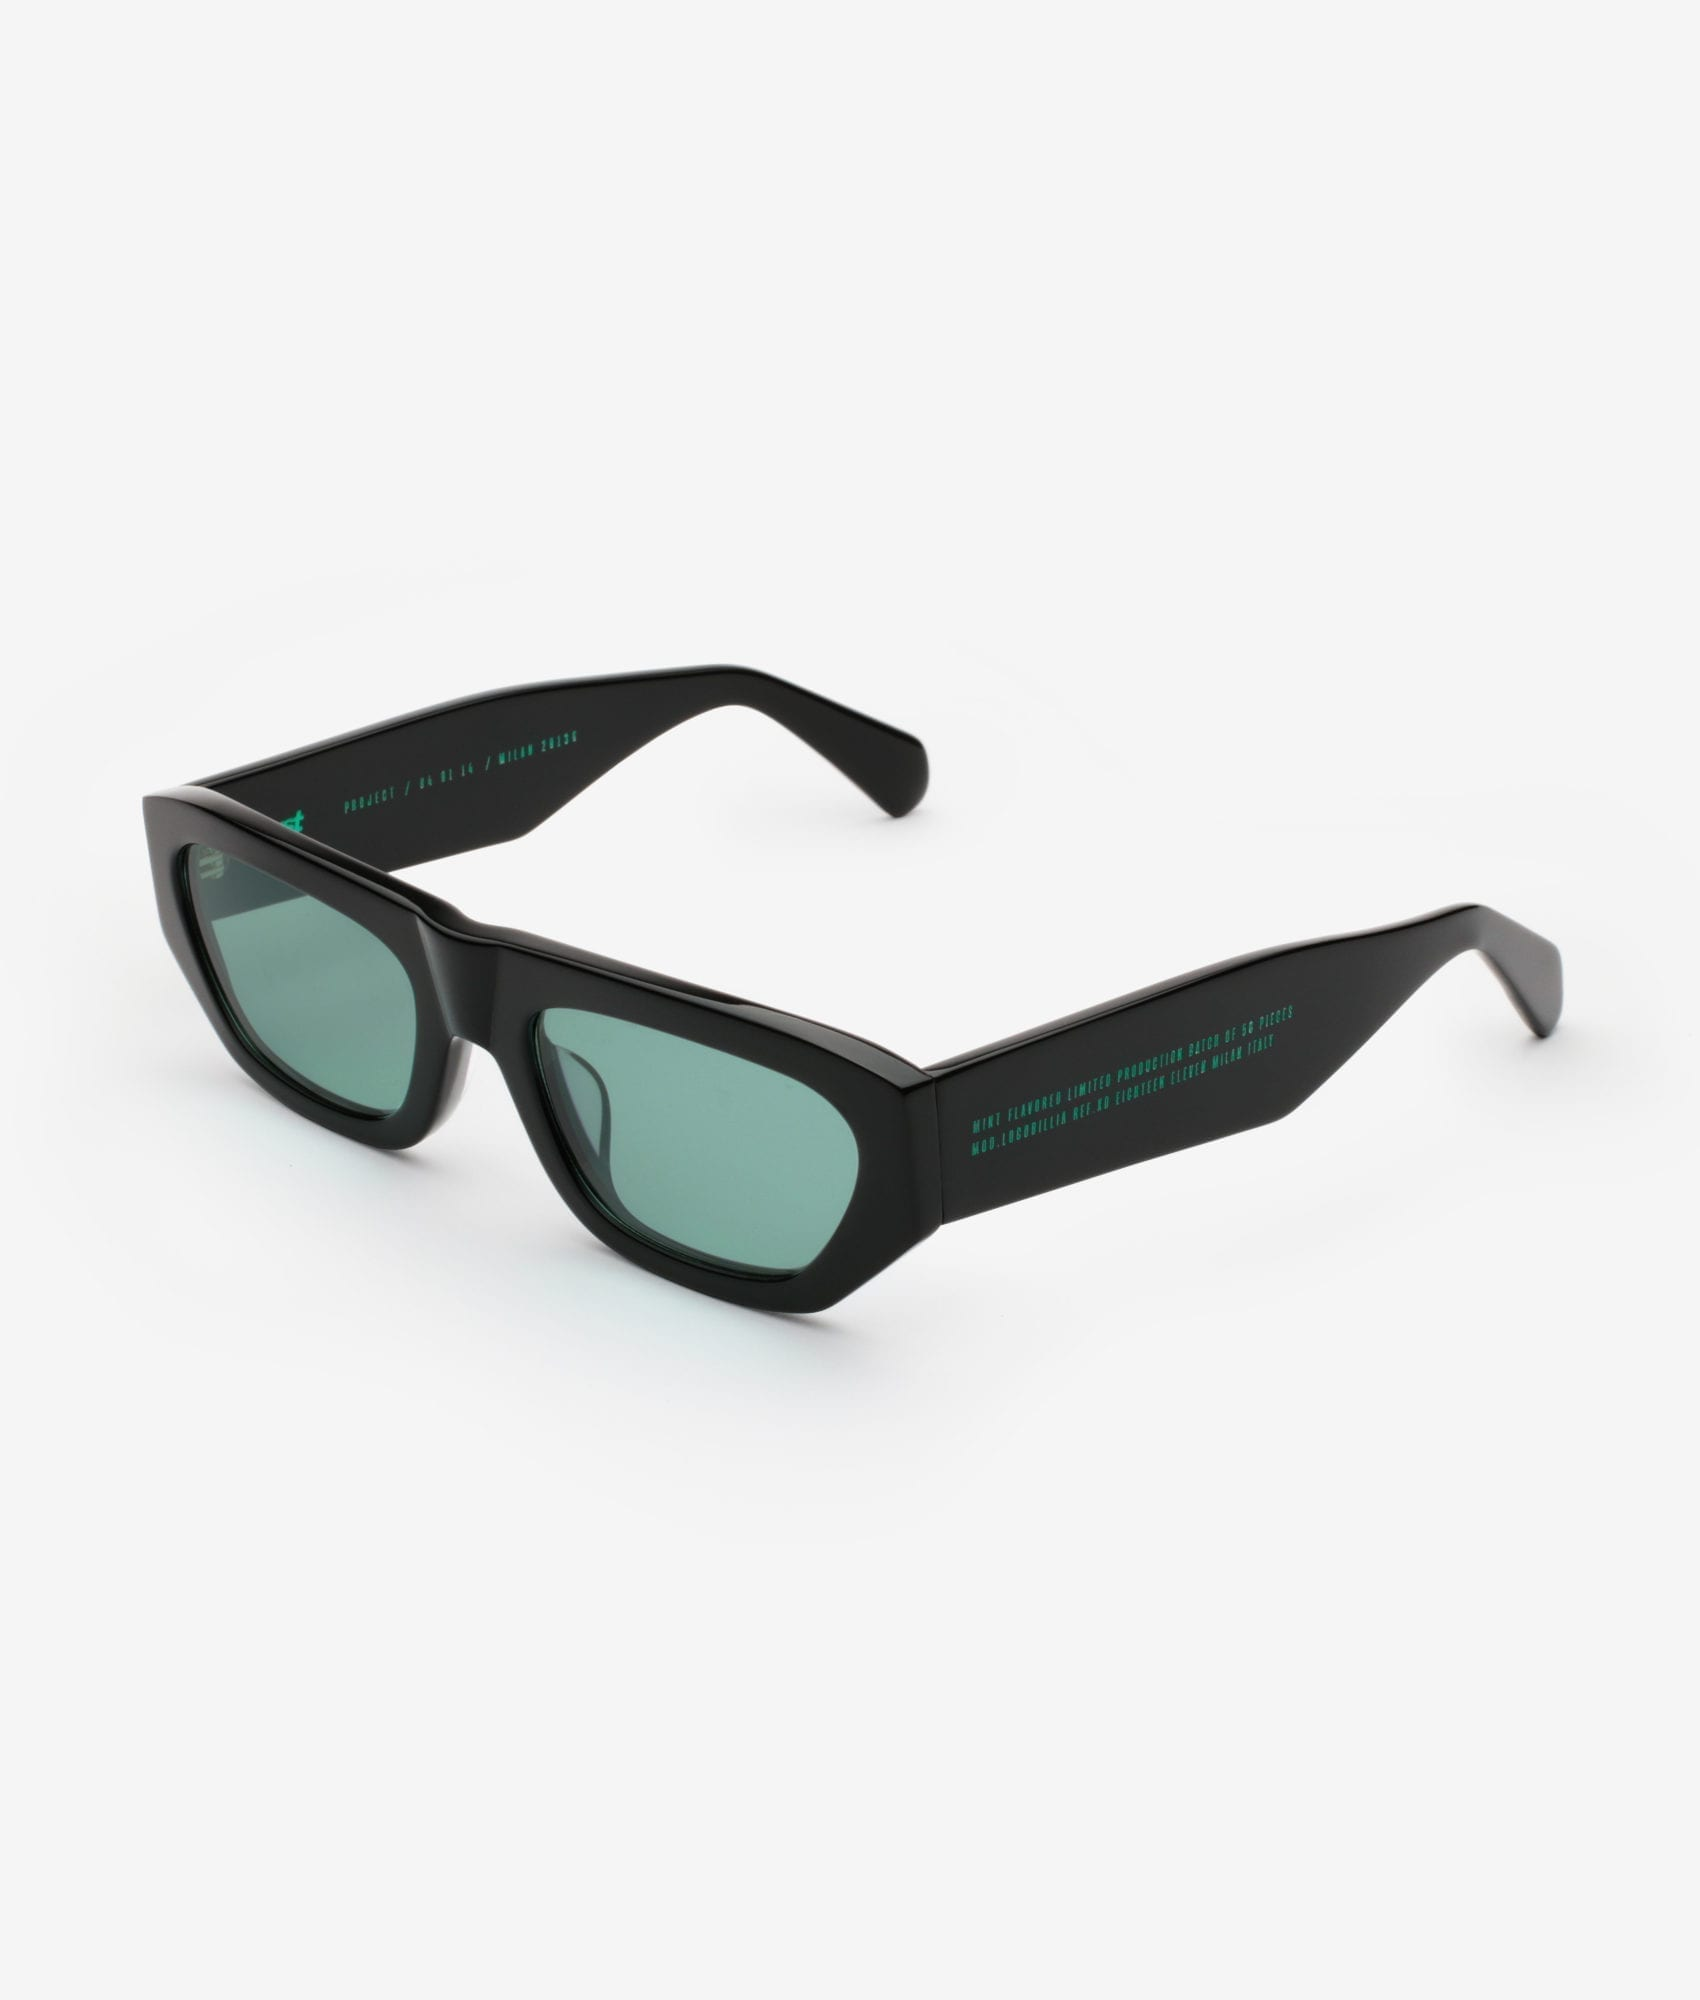 Logobillia Mint Flavored Gast Sunglasses